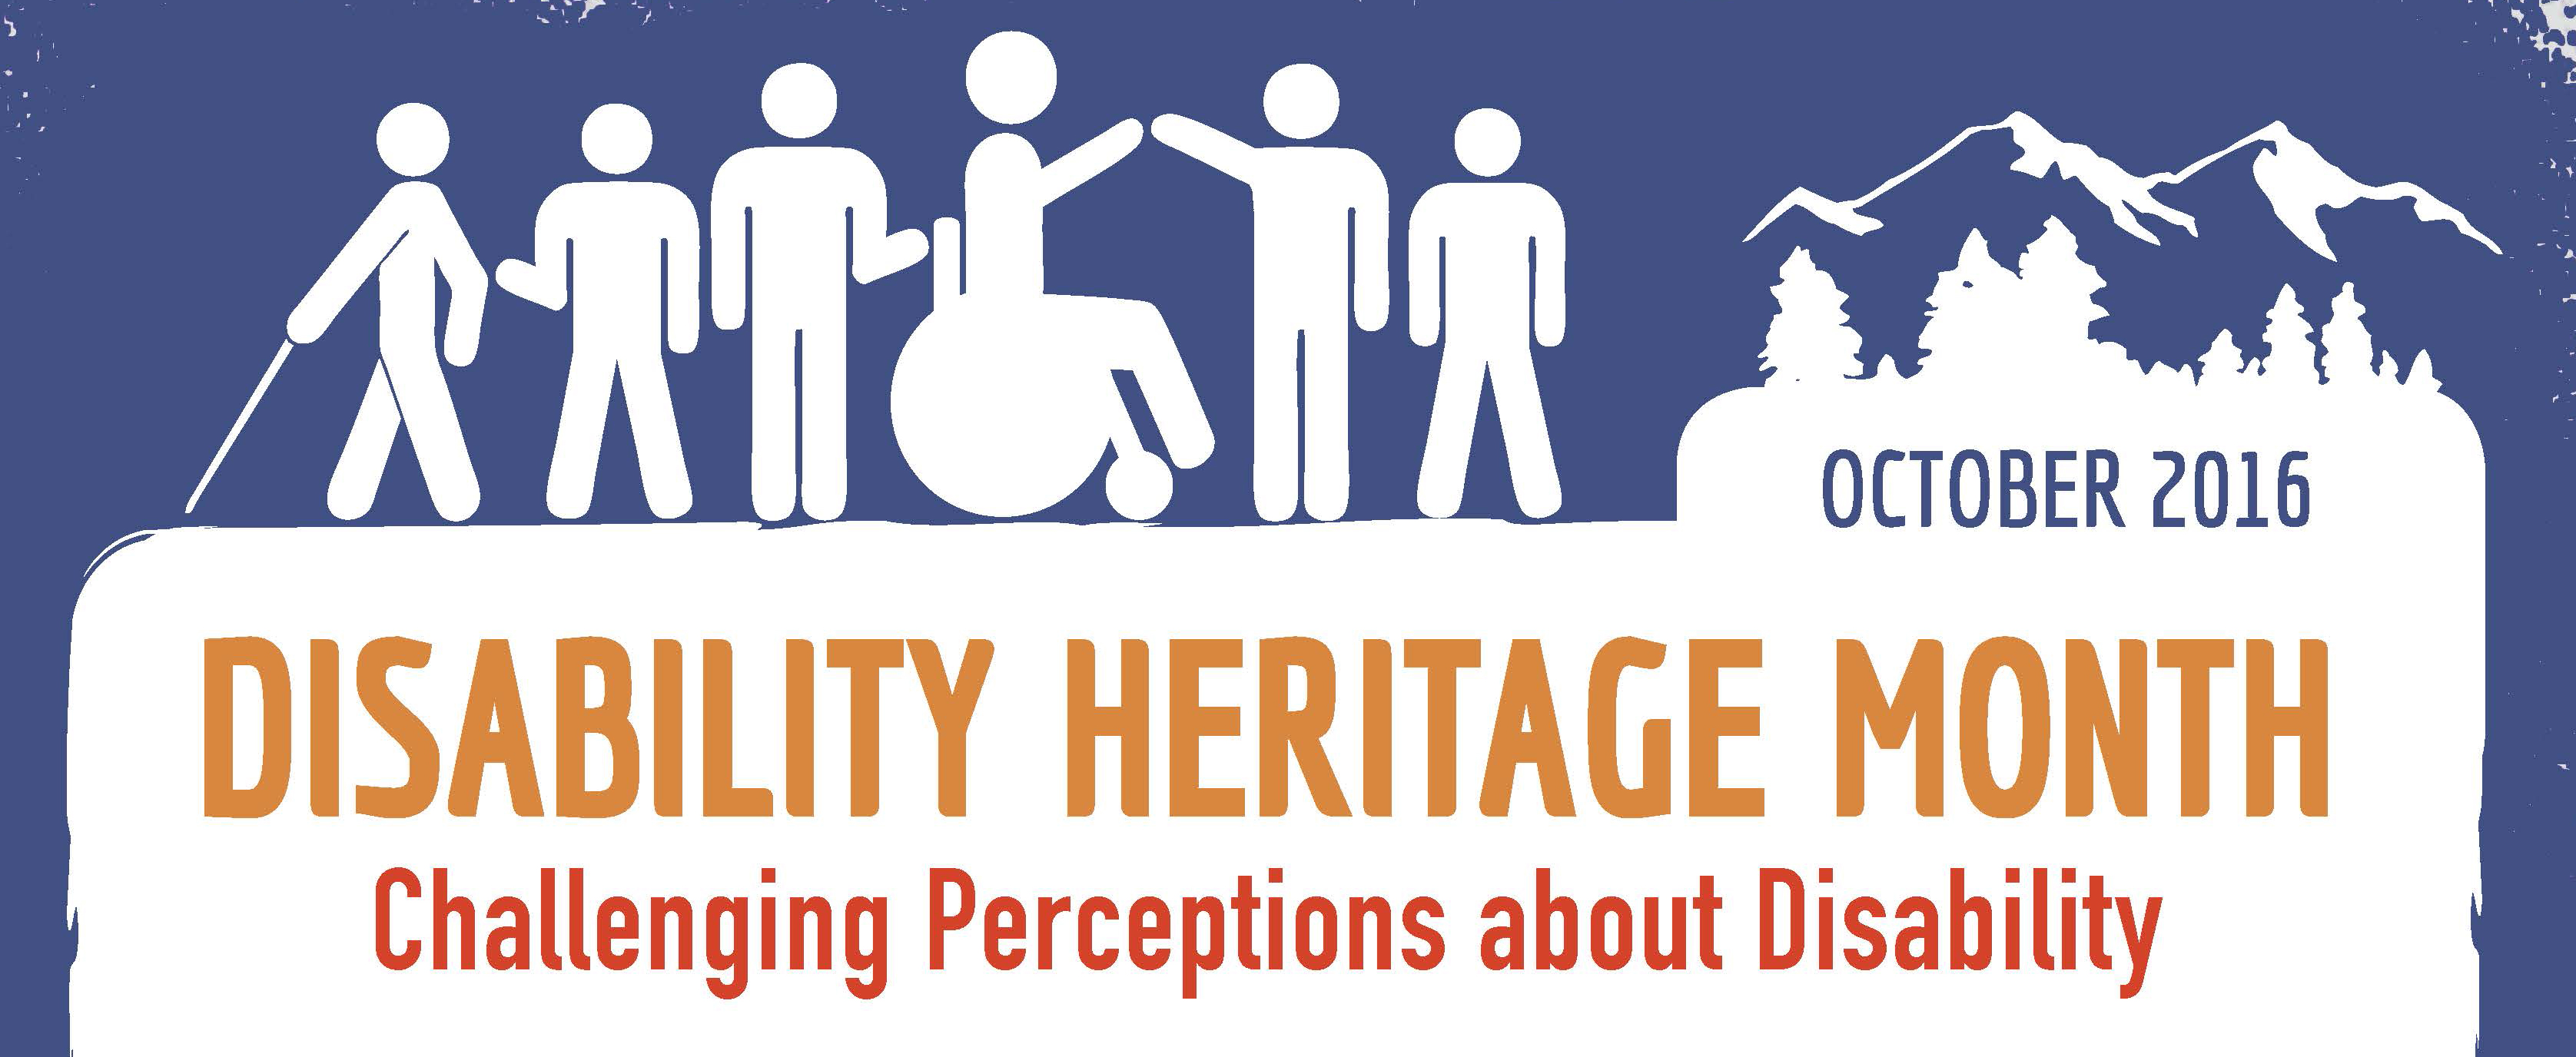 disabilityheritagemonth